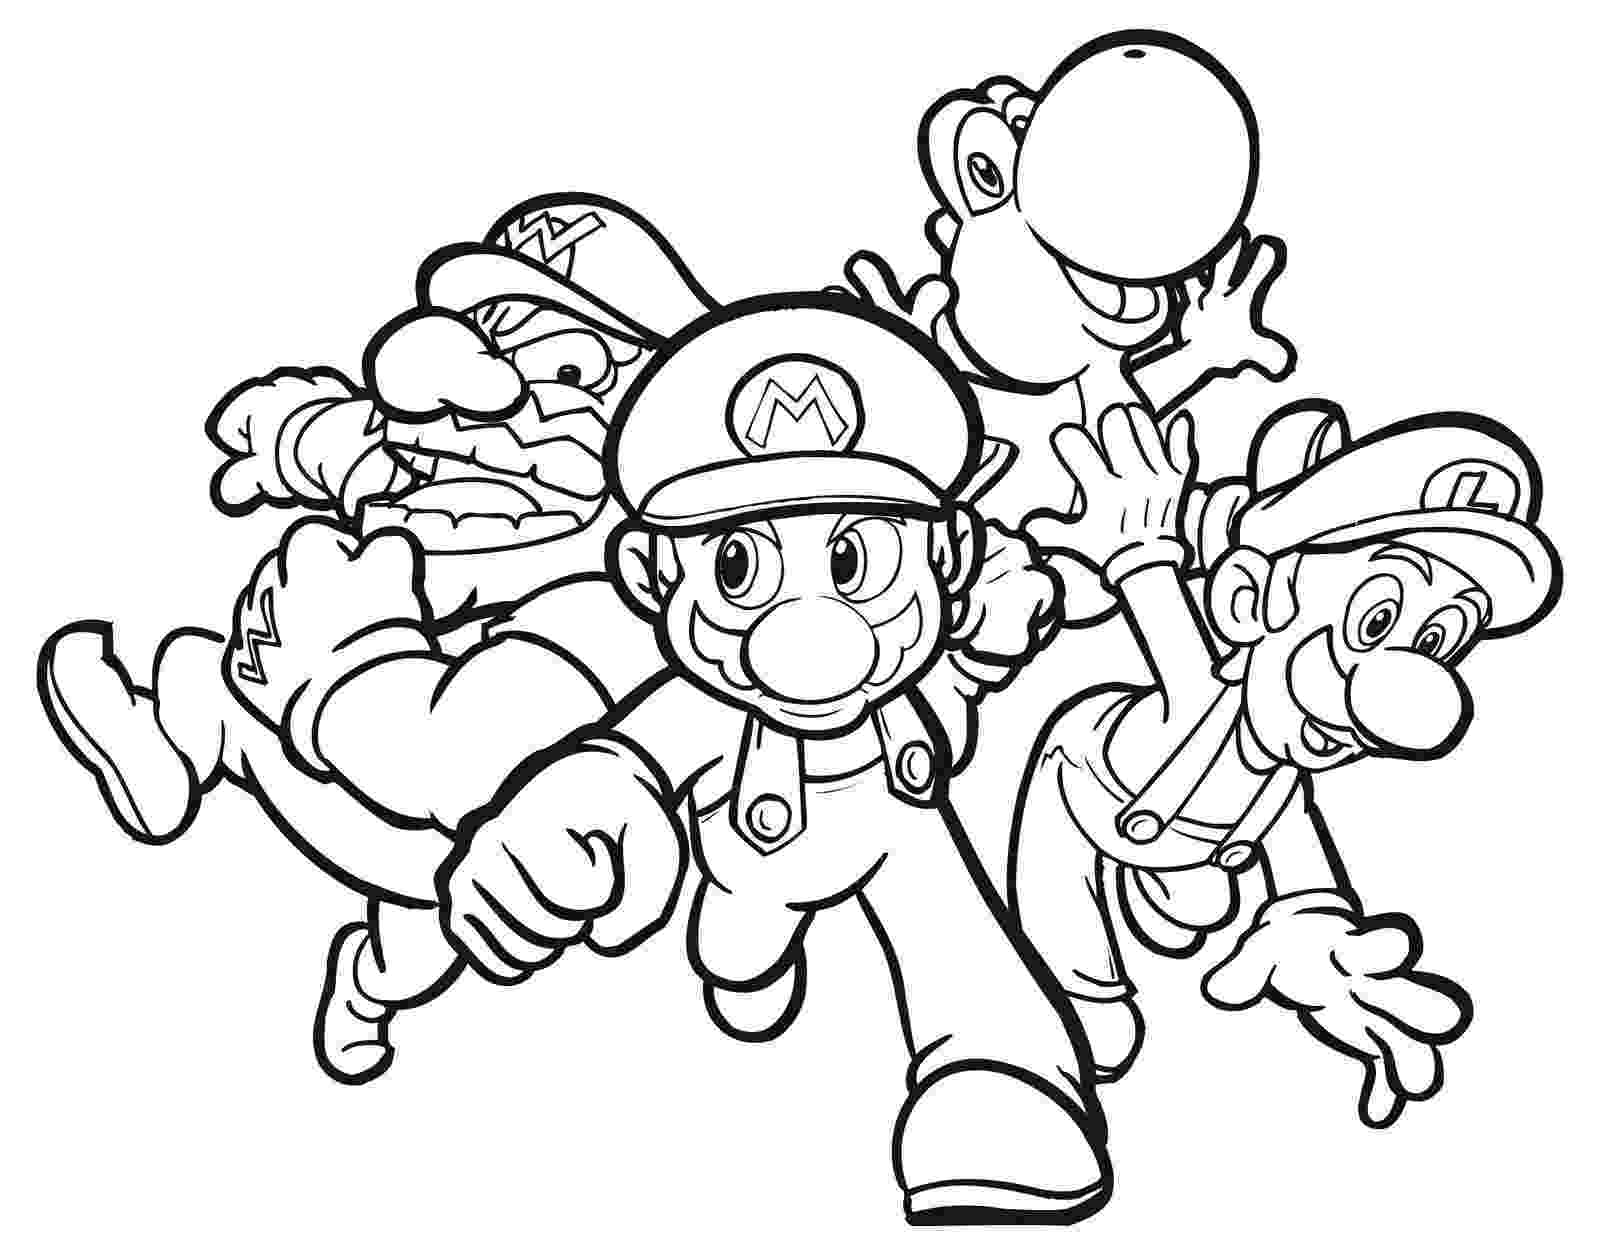 cool coloring pictures cool coloring pages getcoloringpagescom pictures coloring cool